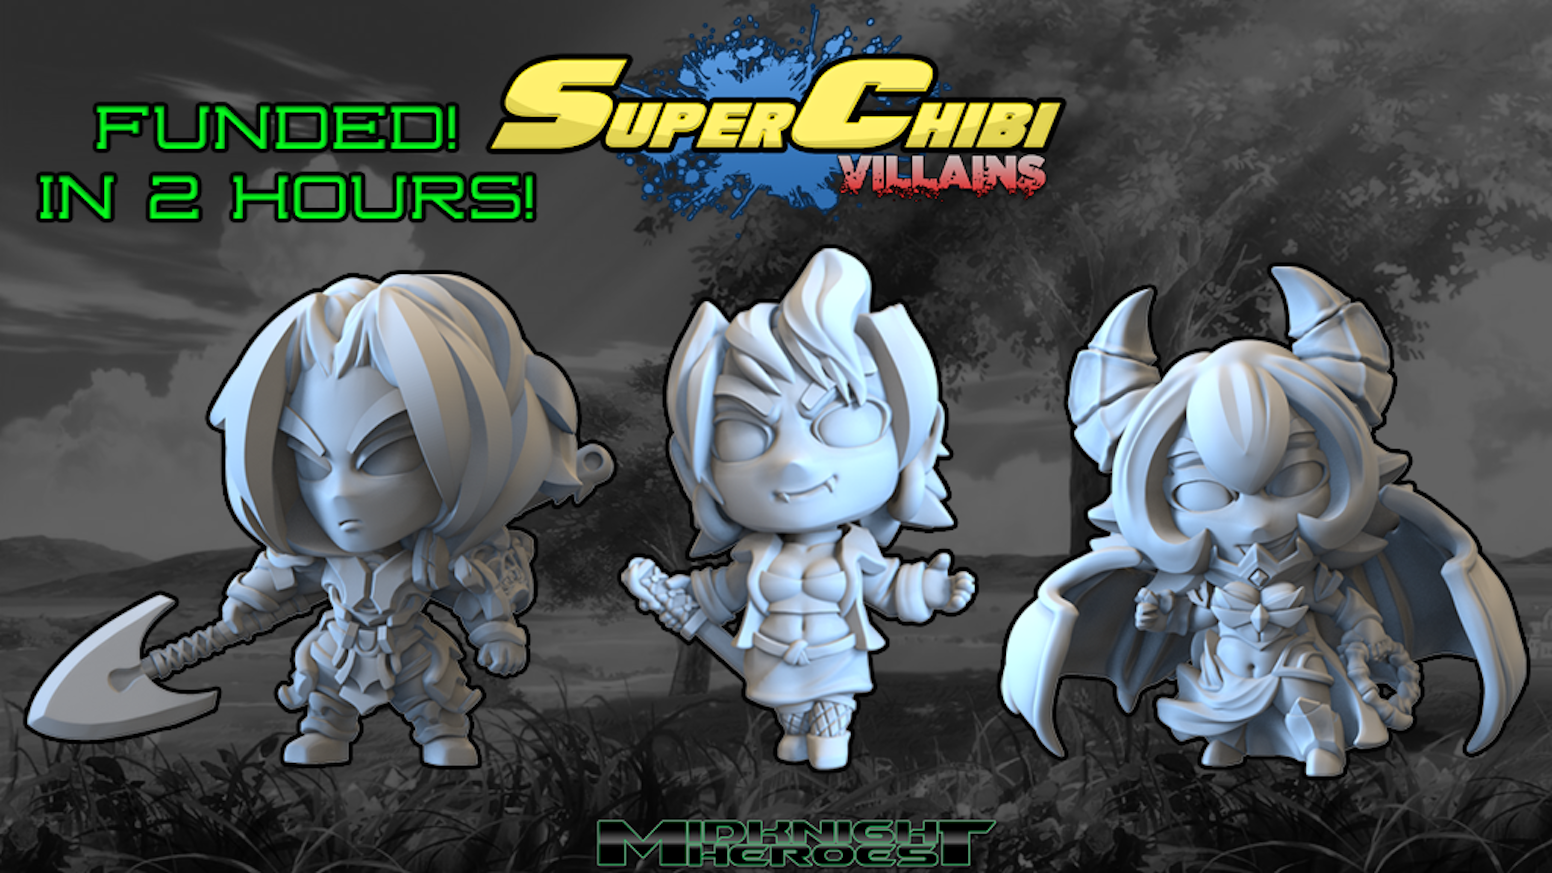 Super Chibi Villians, 30mm resin Chibi miniatures that are seriously cute and bad to the bone!